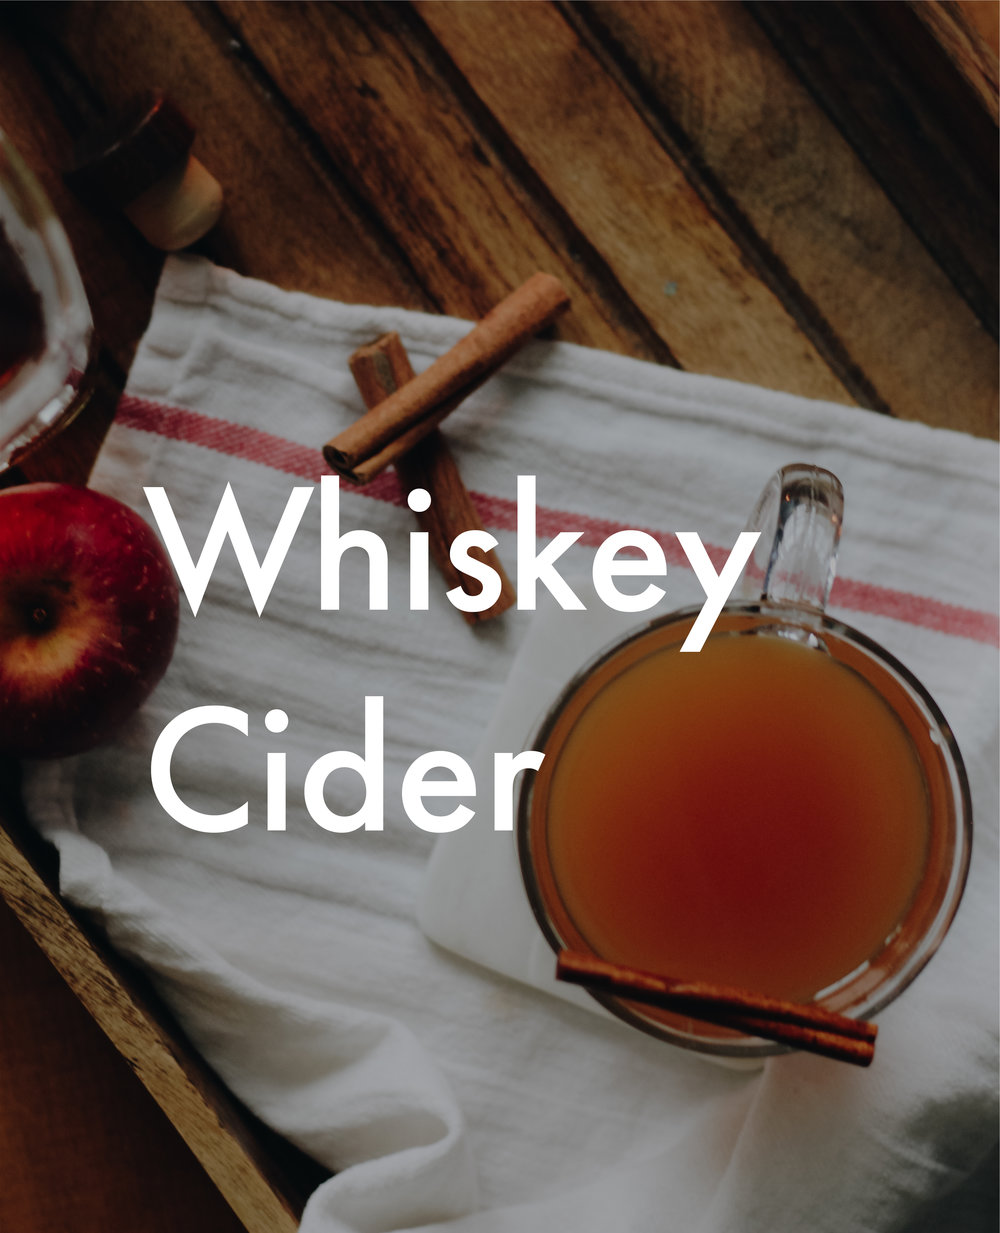 whiskey cider-1.jpg